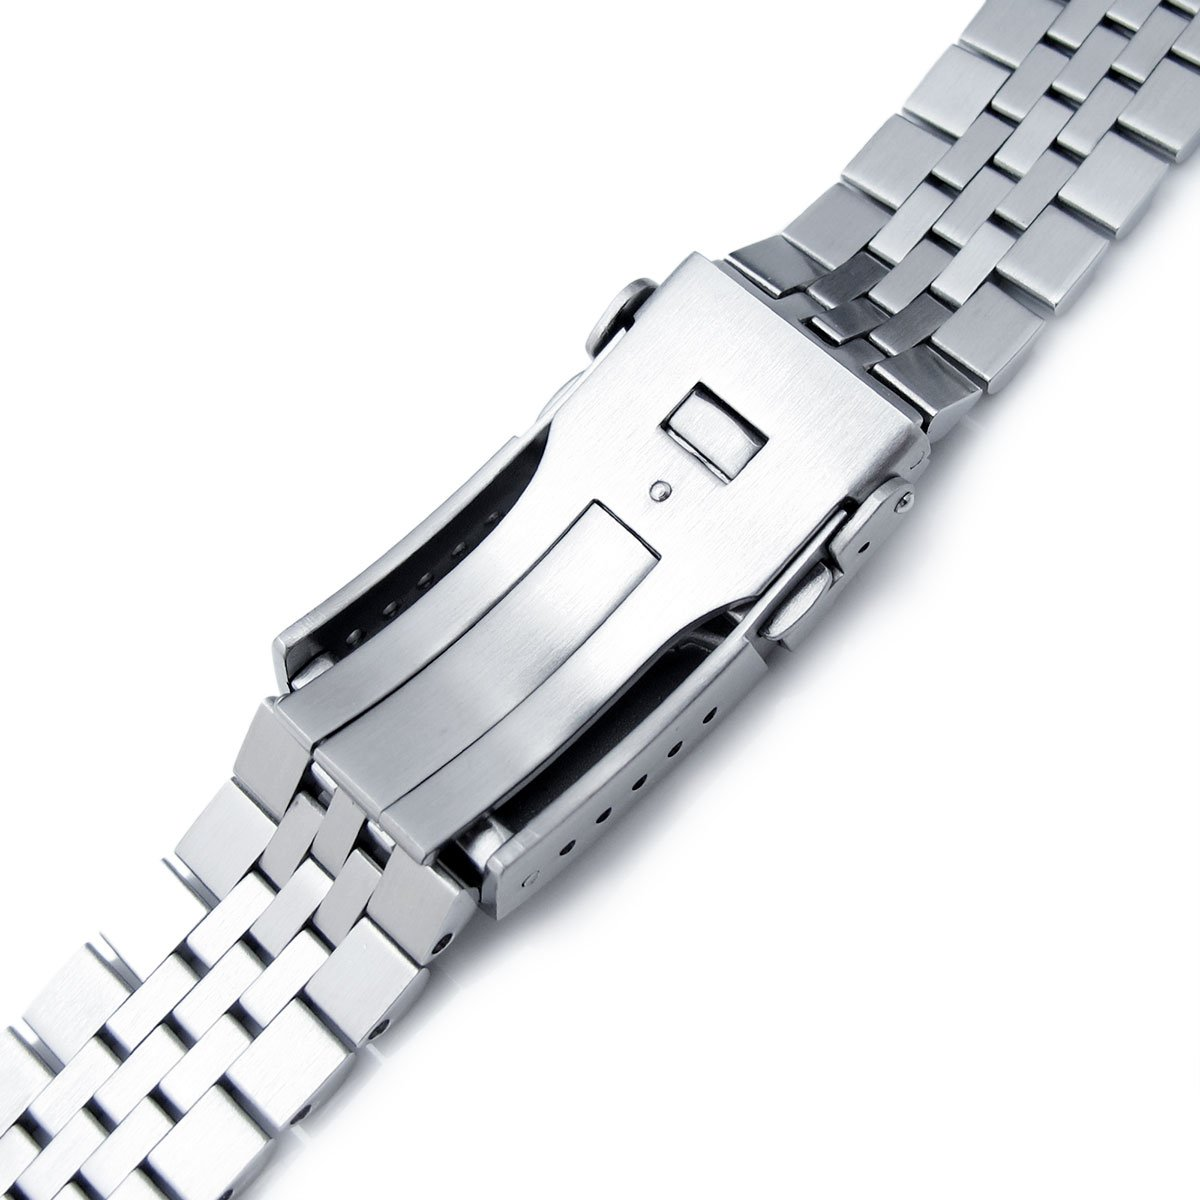 22mm Super 3D Jubilee Watch Bracelet for Seiko New Turtles SRP775, 2-Tone, Button Chamfer by Seiko Replacement by MiLTAT (Image #6)